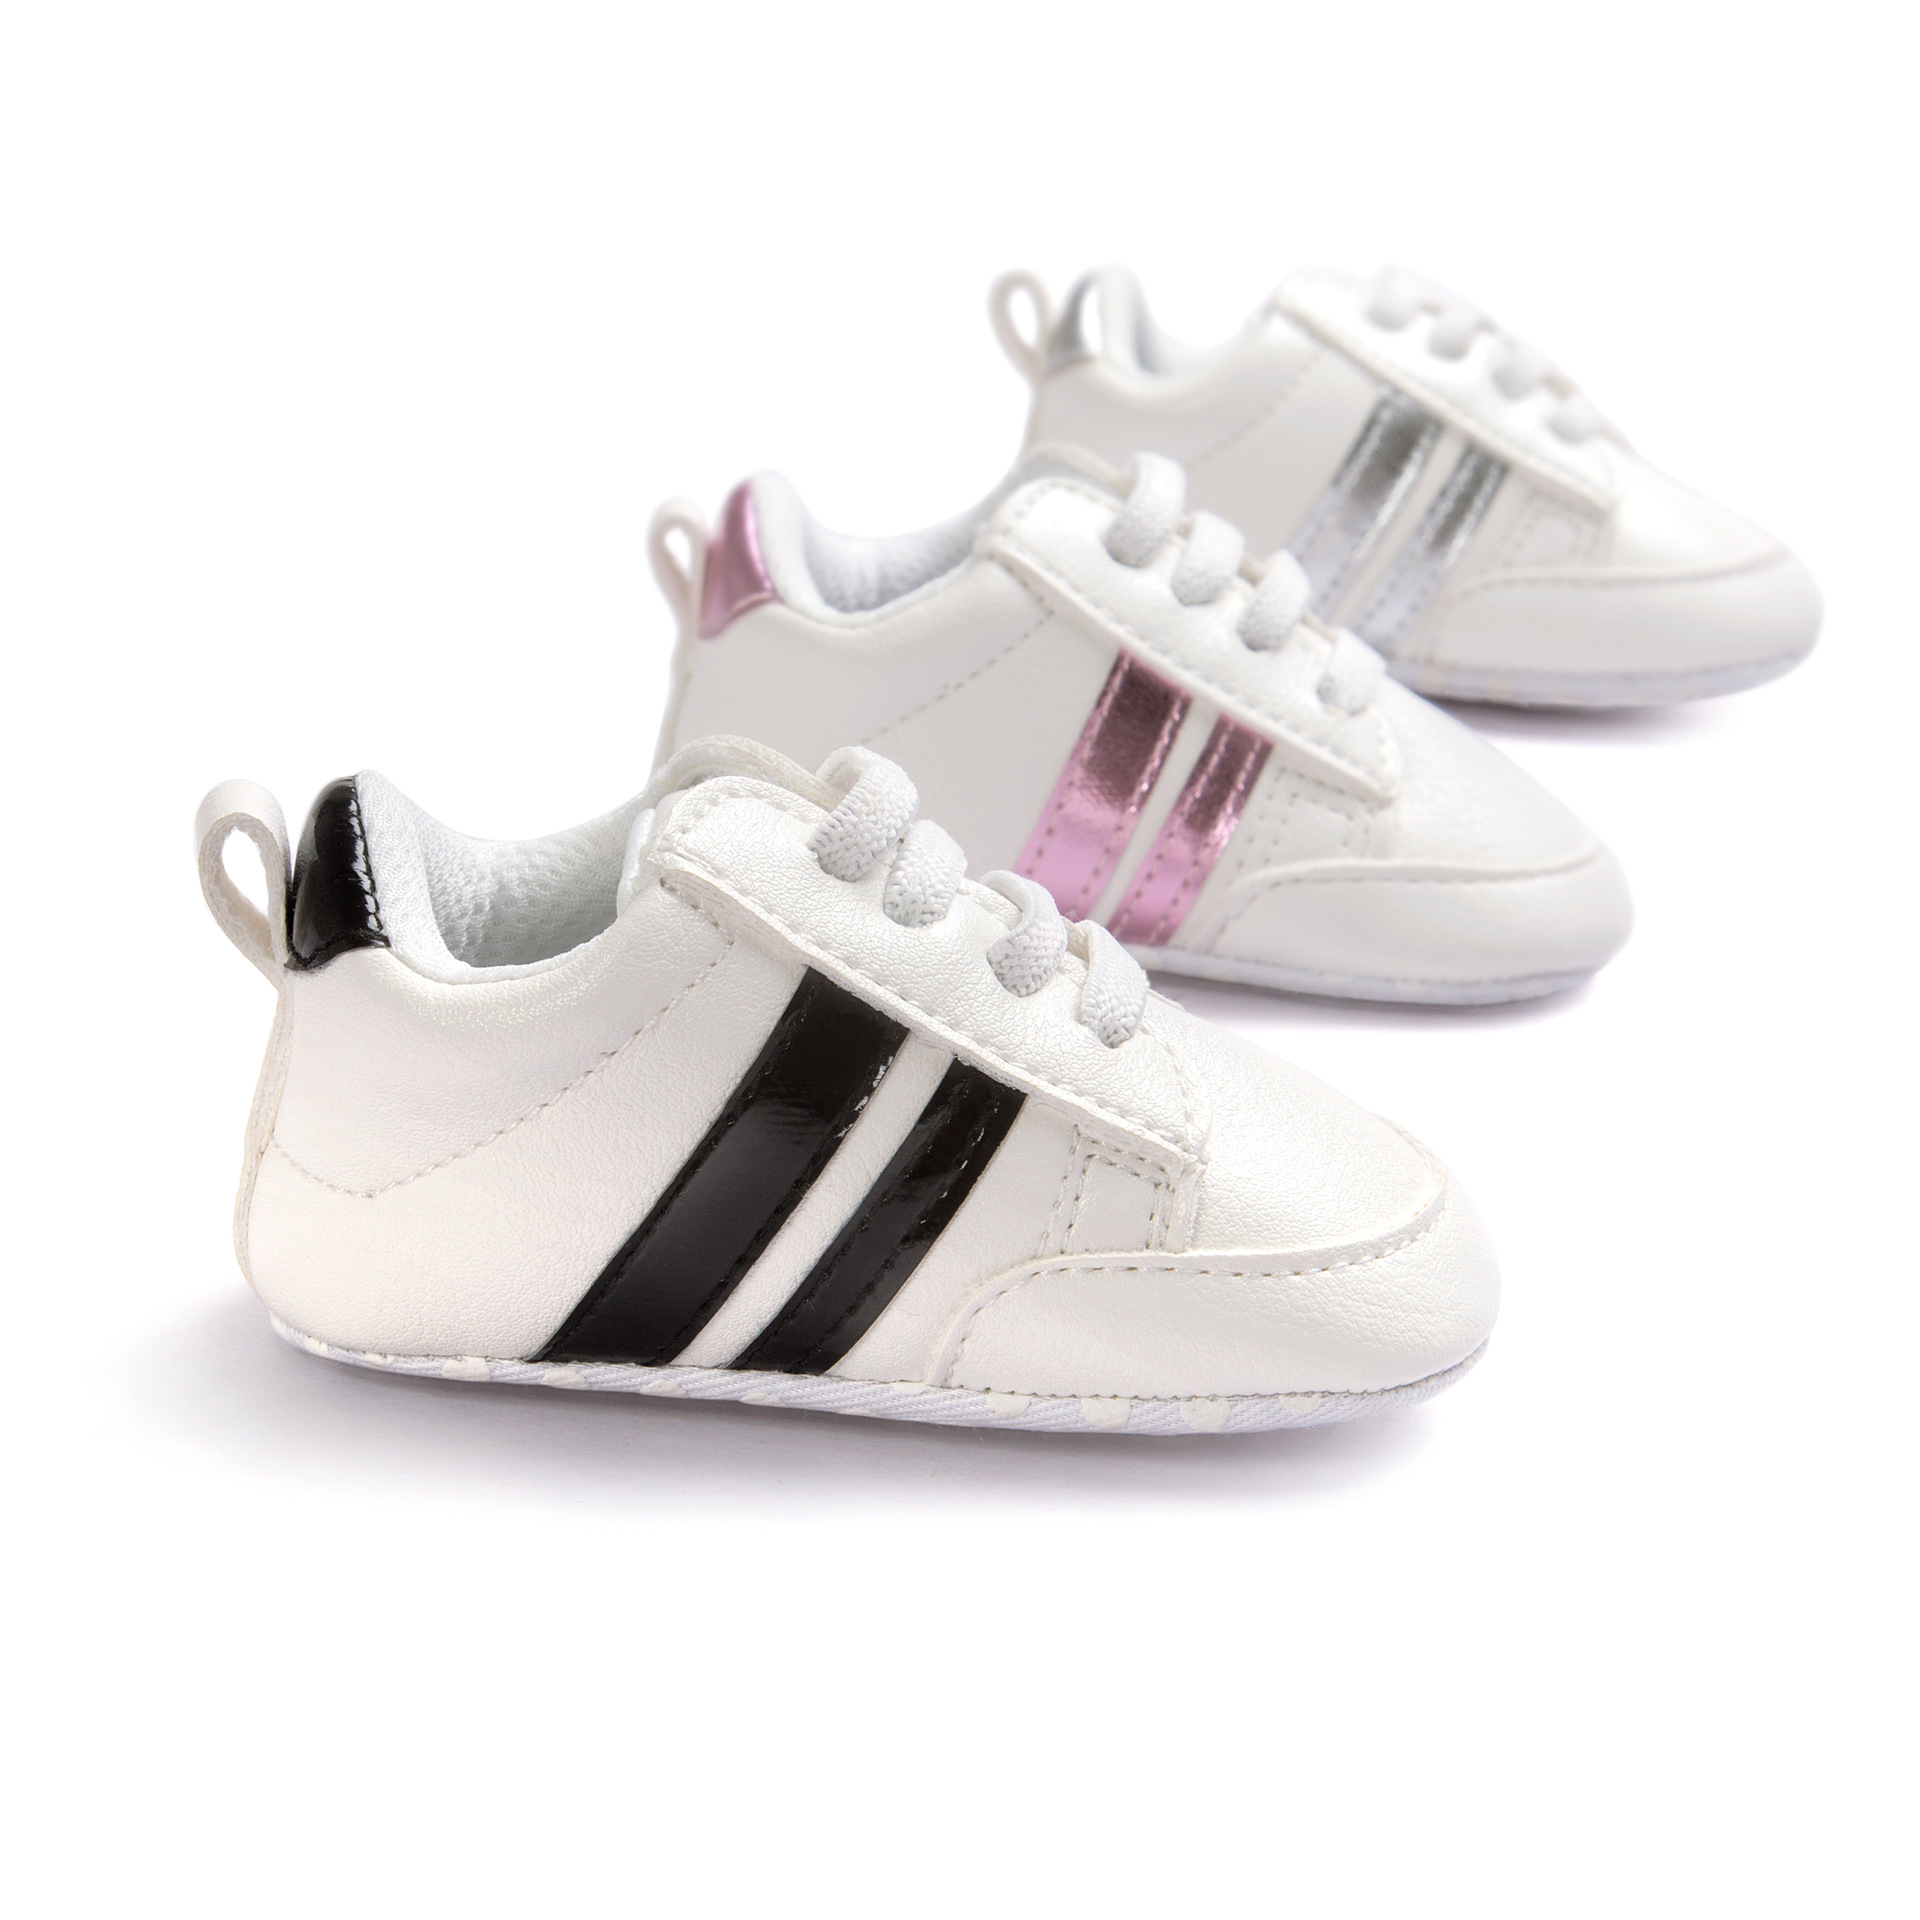 2017 ROMIRUS Soft Bottom Fashion Sneakers Baby Boys Girls First Walkers Baby Indoor Non-slop Toddler Shoes 8 New Colors chiaro торшер паула 411042804